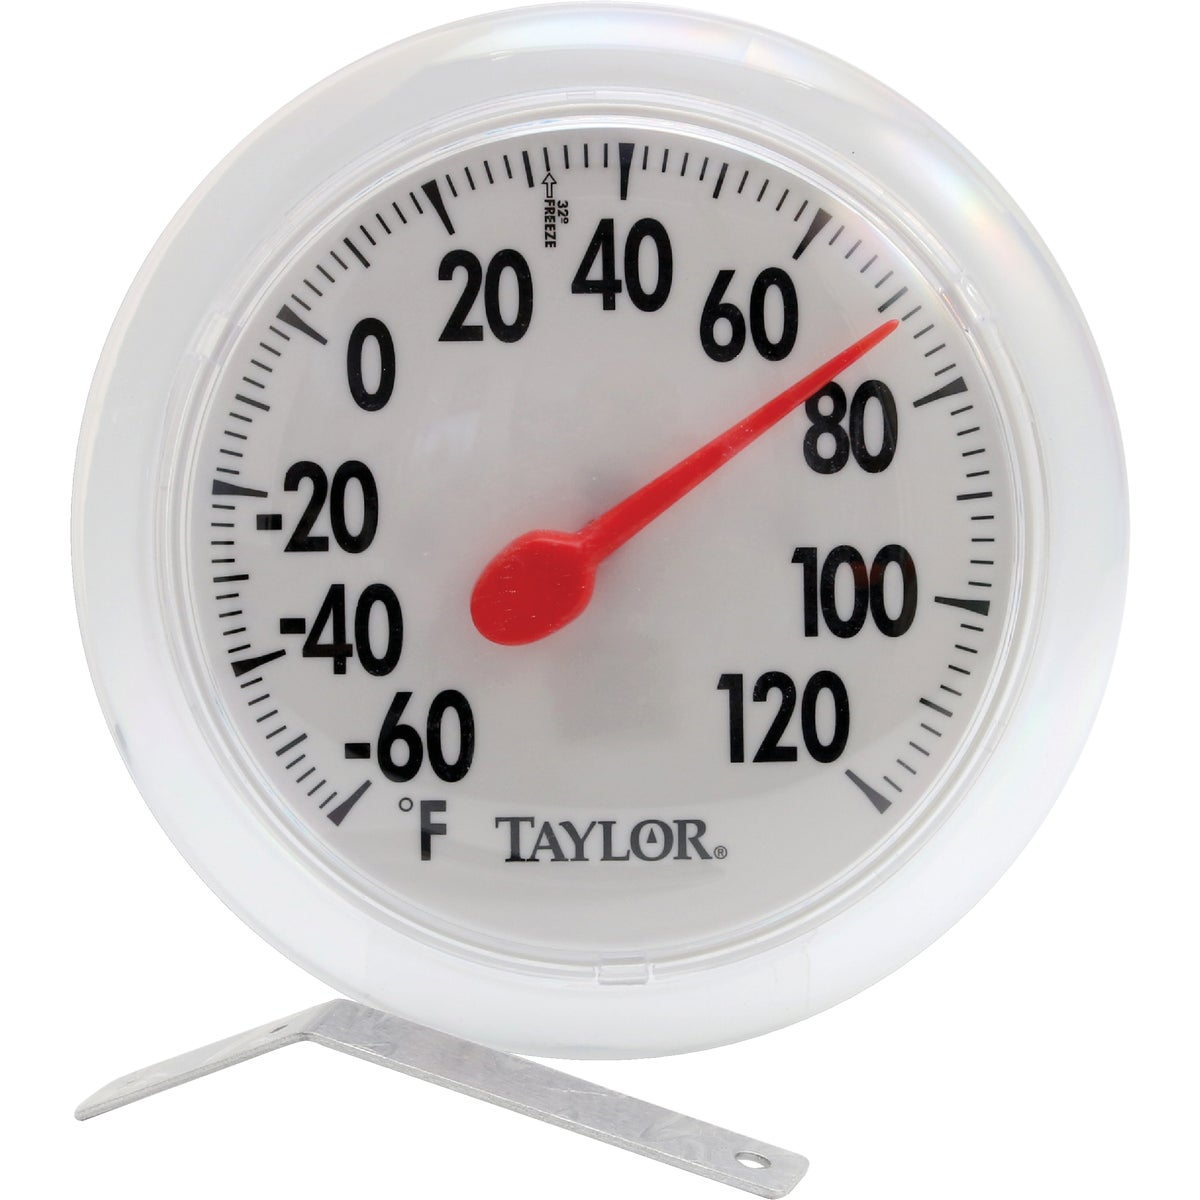 OUTDOOR THERMOMETER - 5630 by Taylor Precision